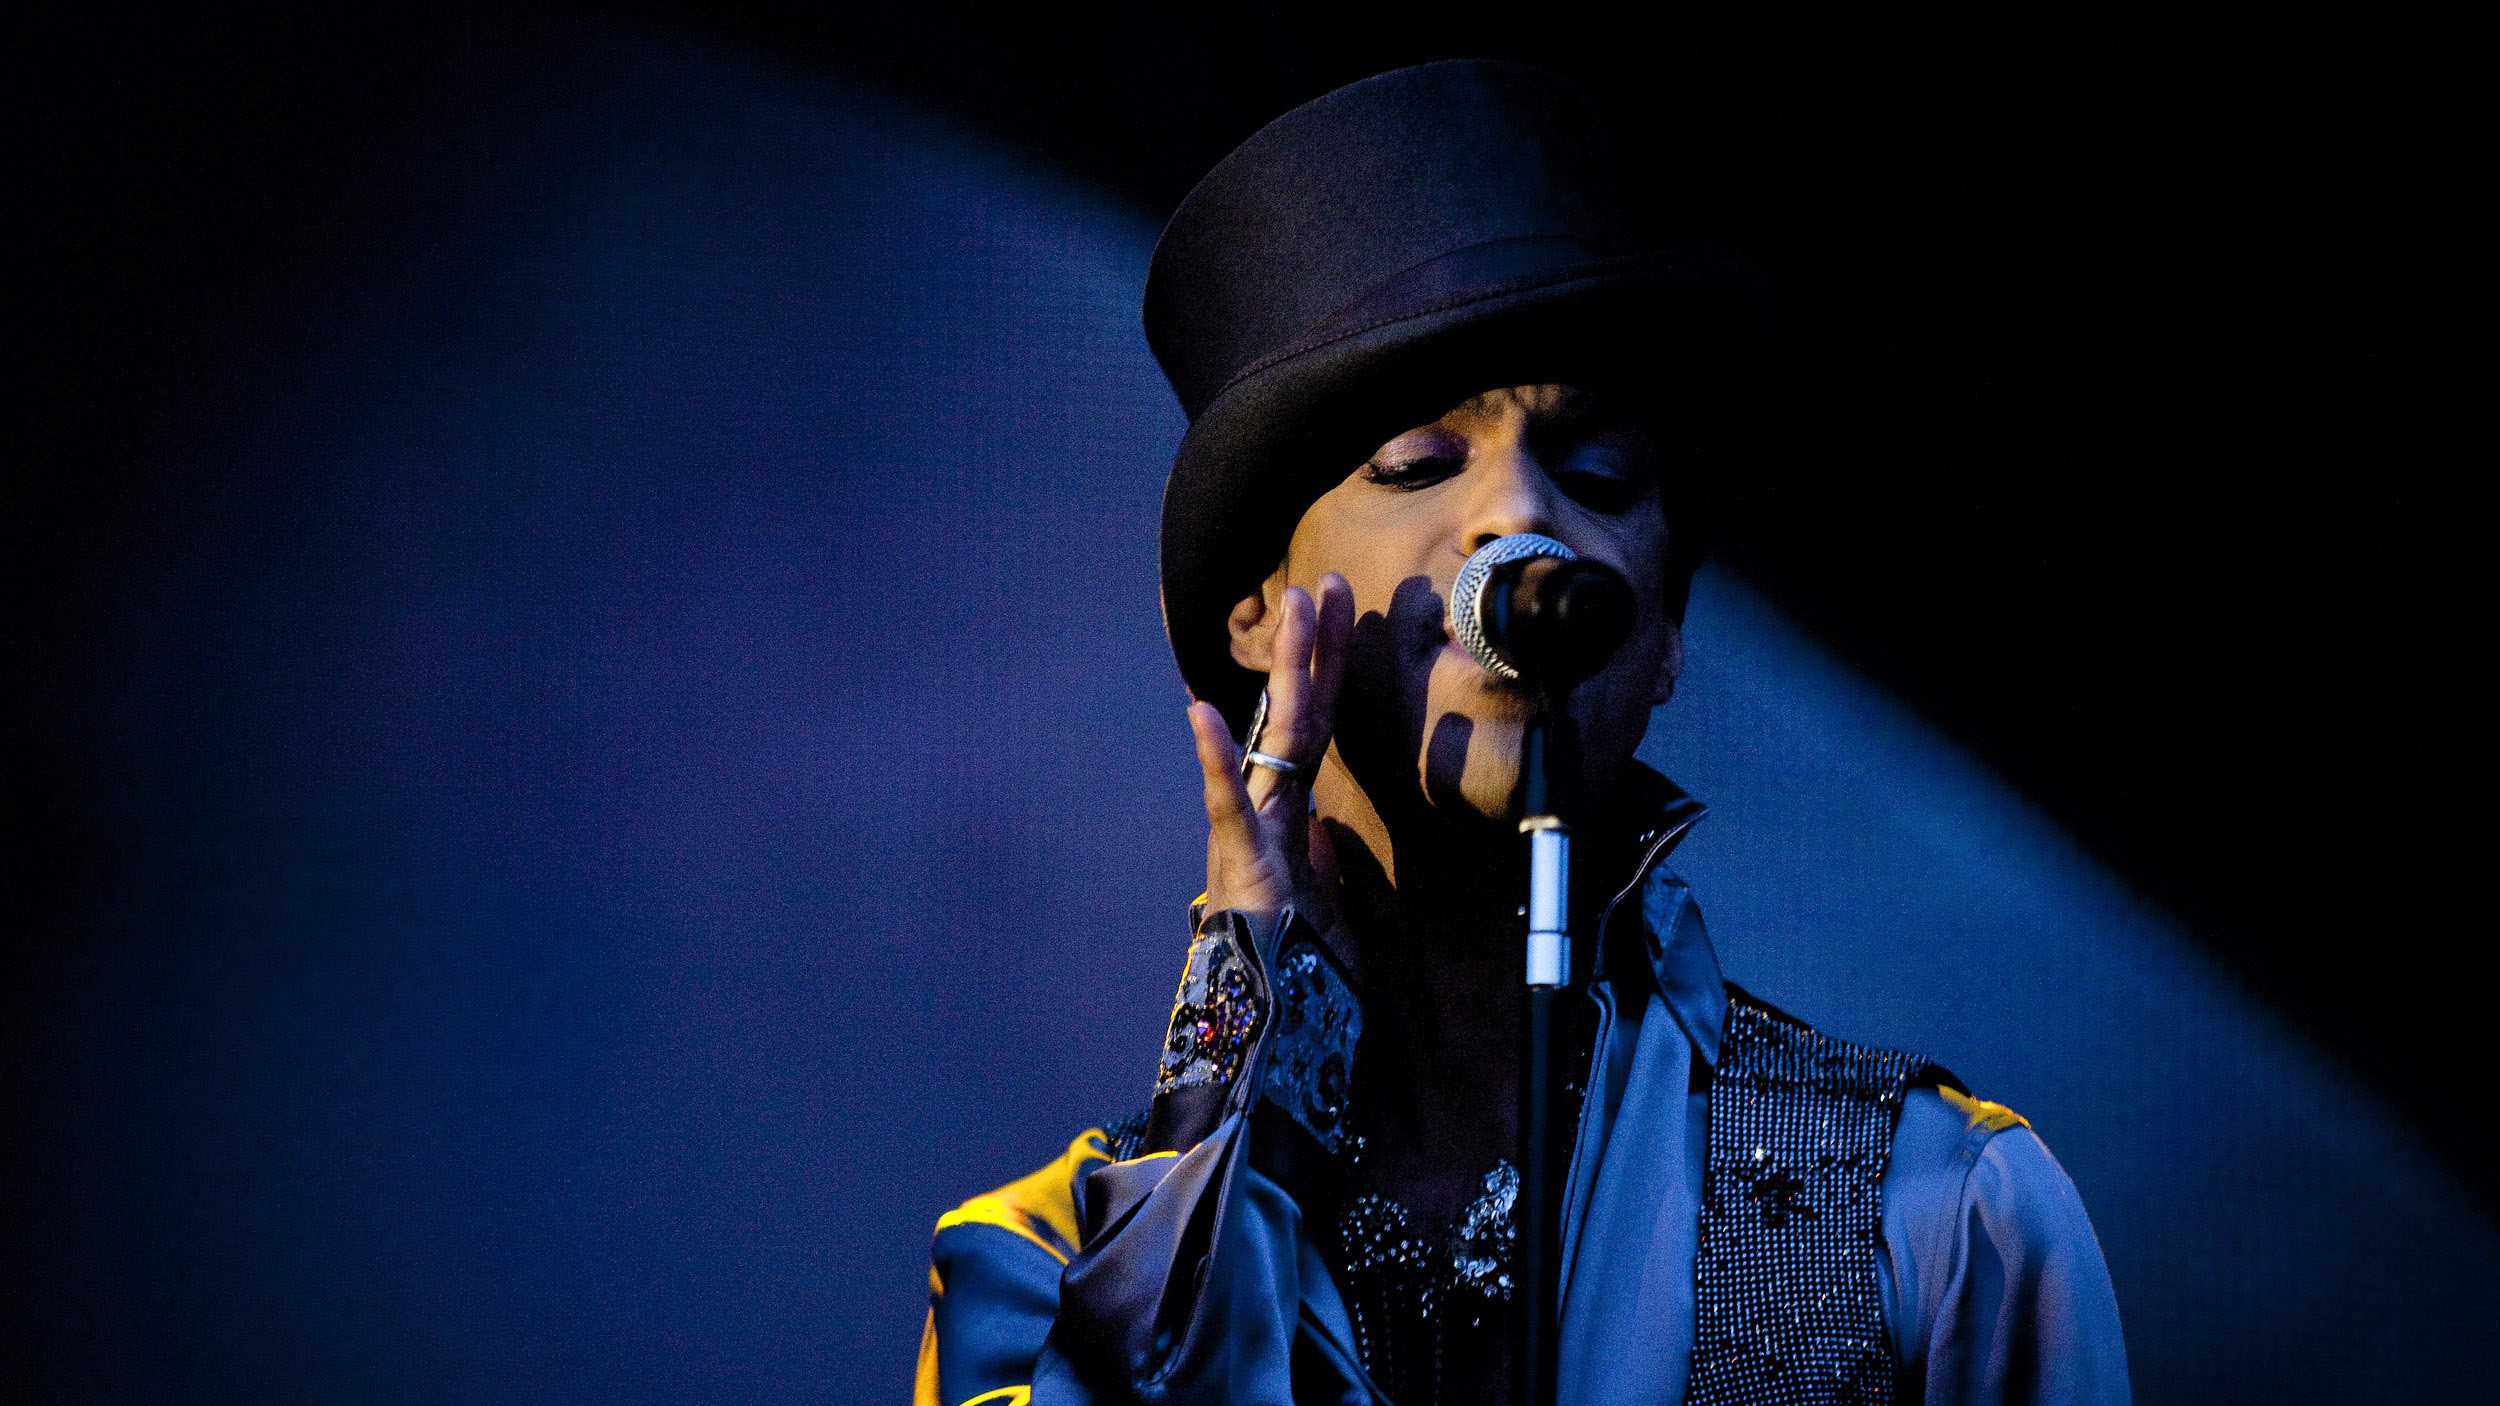 Here's What You Need to Know About Fentanyl, the Powerful Opioid That Killed Prince